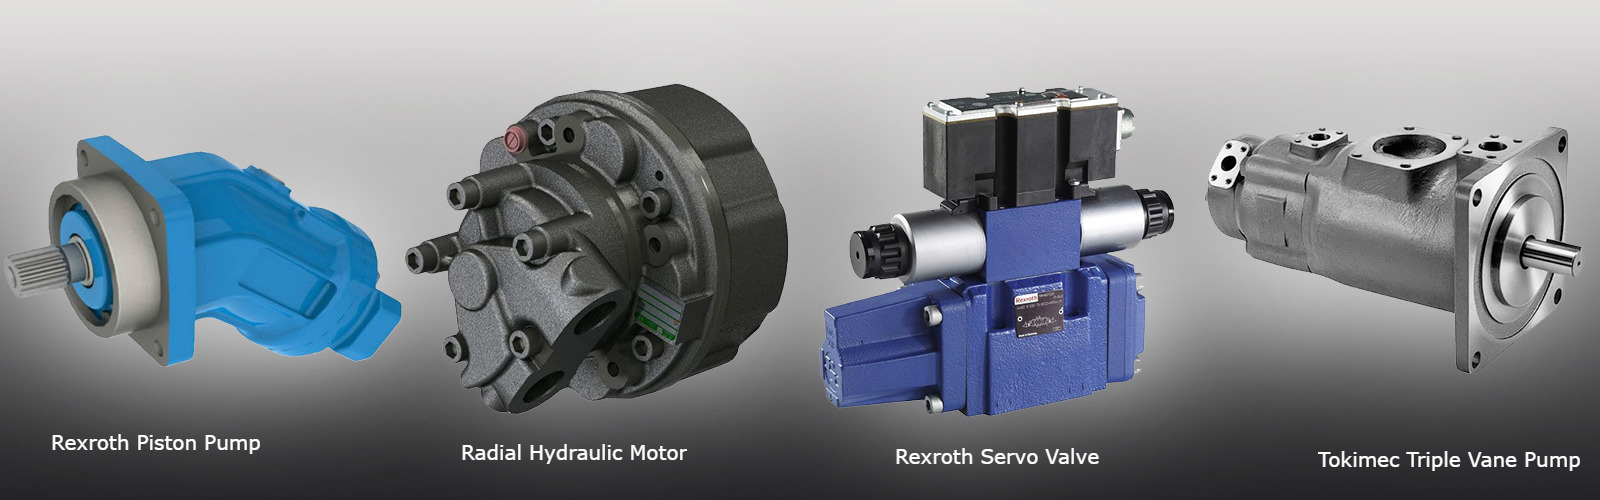 Hydraulic Motor, Pump and Valve